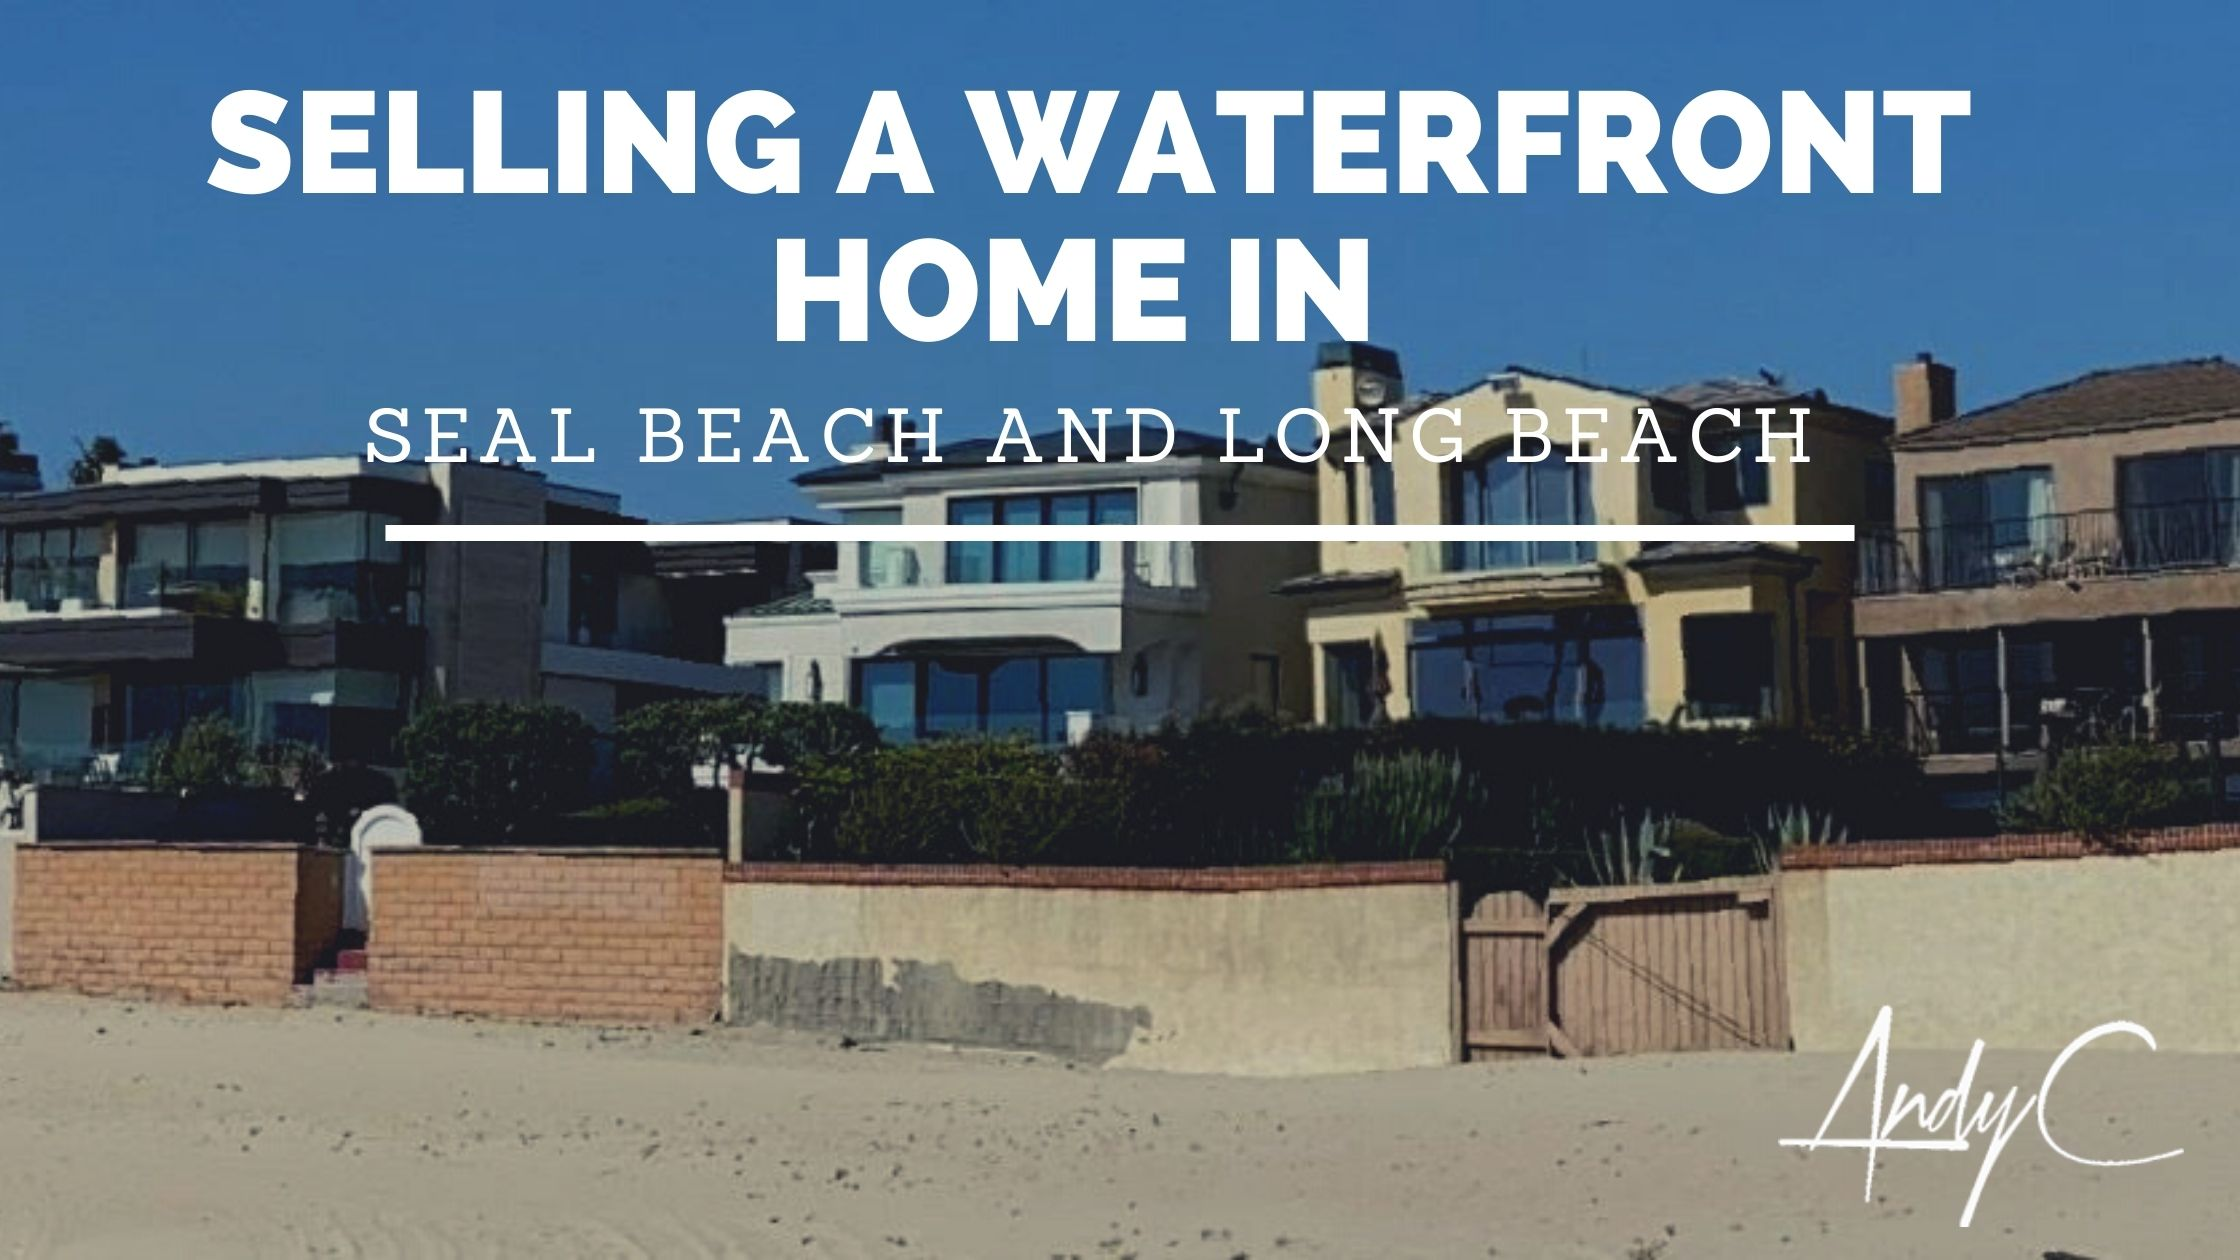 Selling waterfront Seal Beach and Long Beach